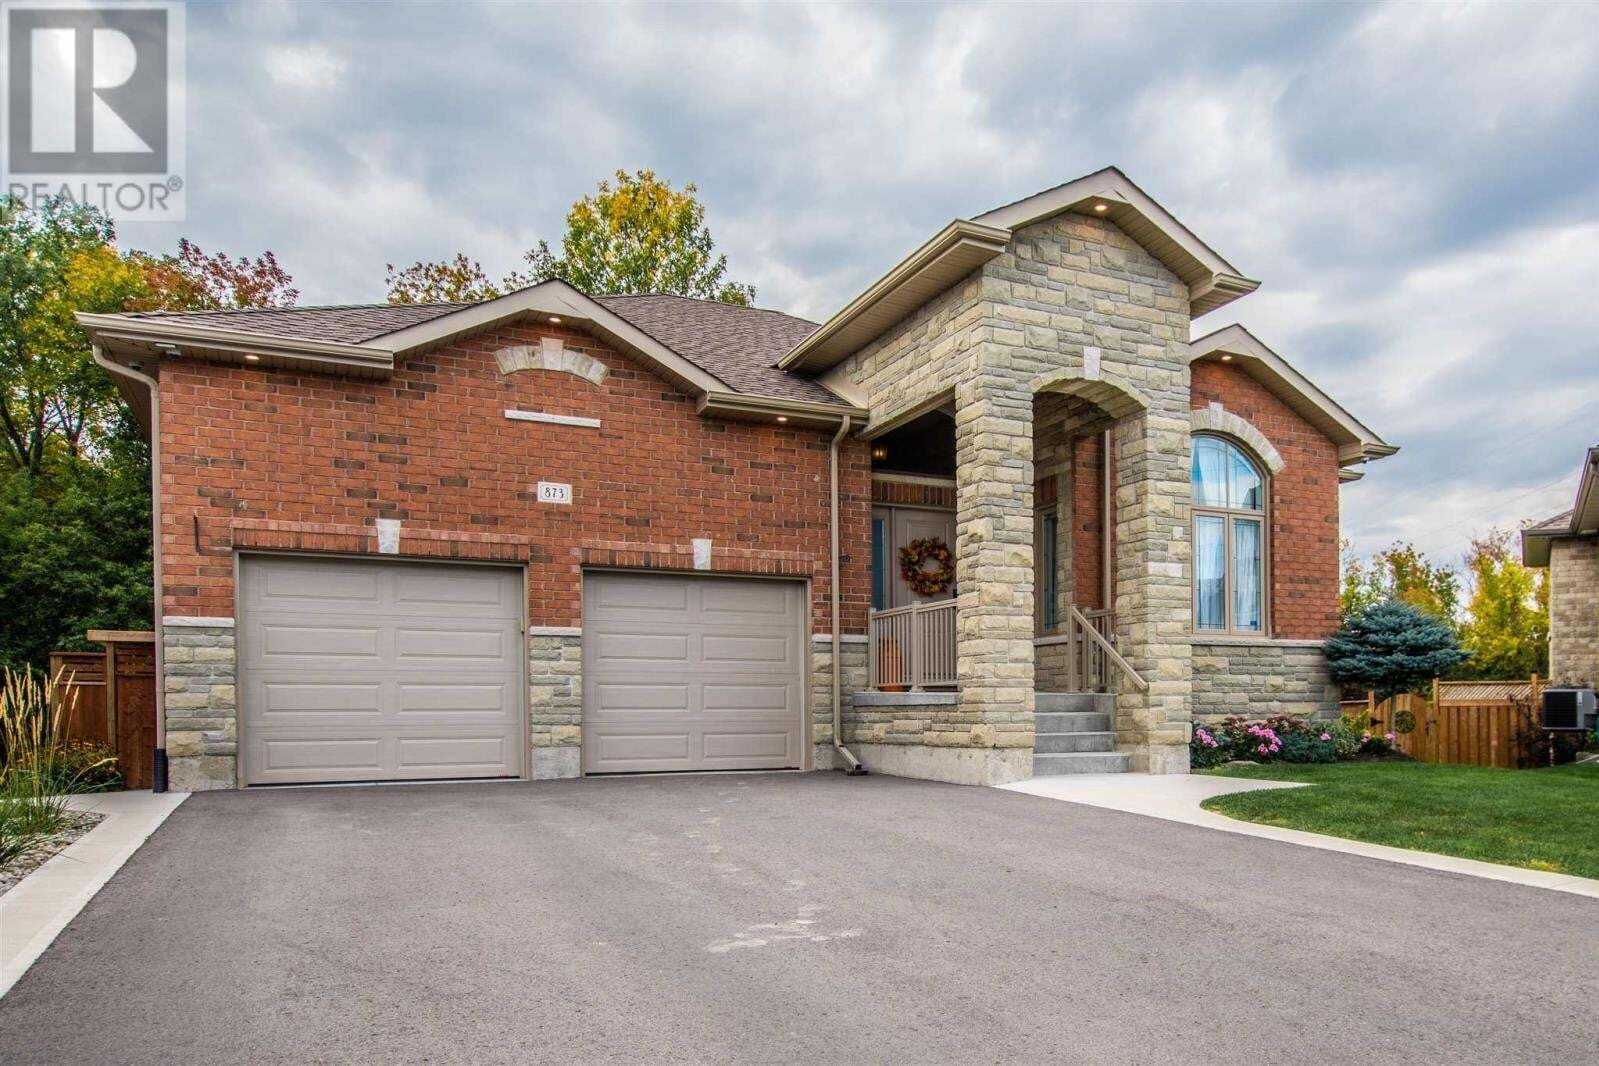 House for sale at 873 Windermere Dr Kingston Ontario - MLS: K20005776